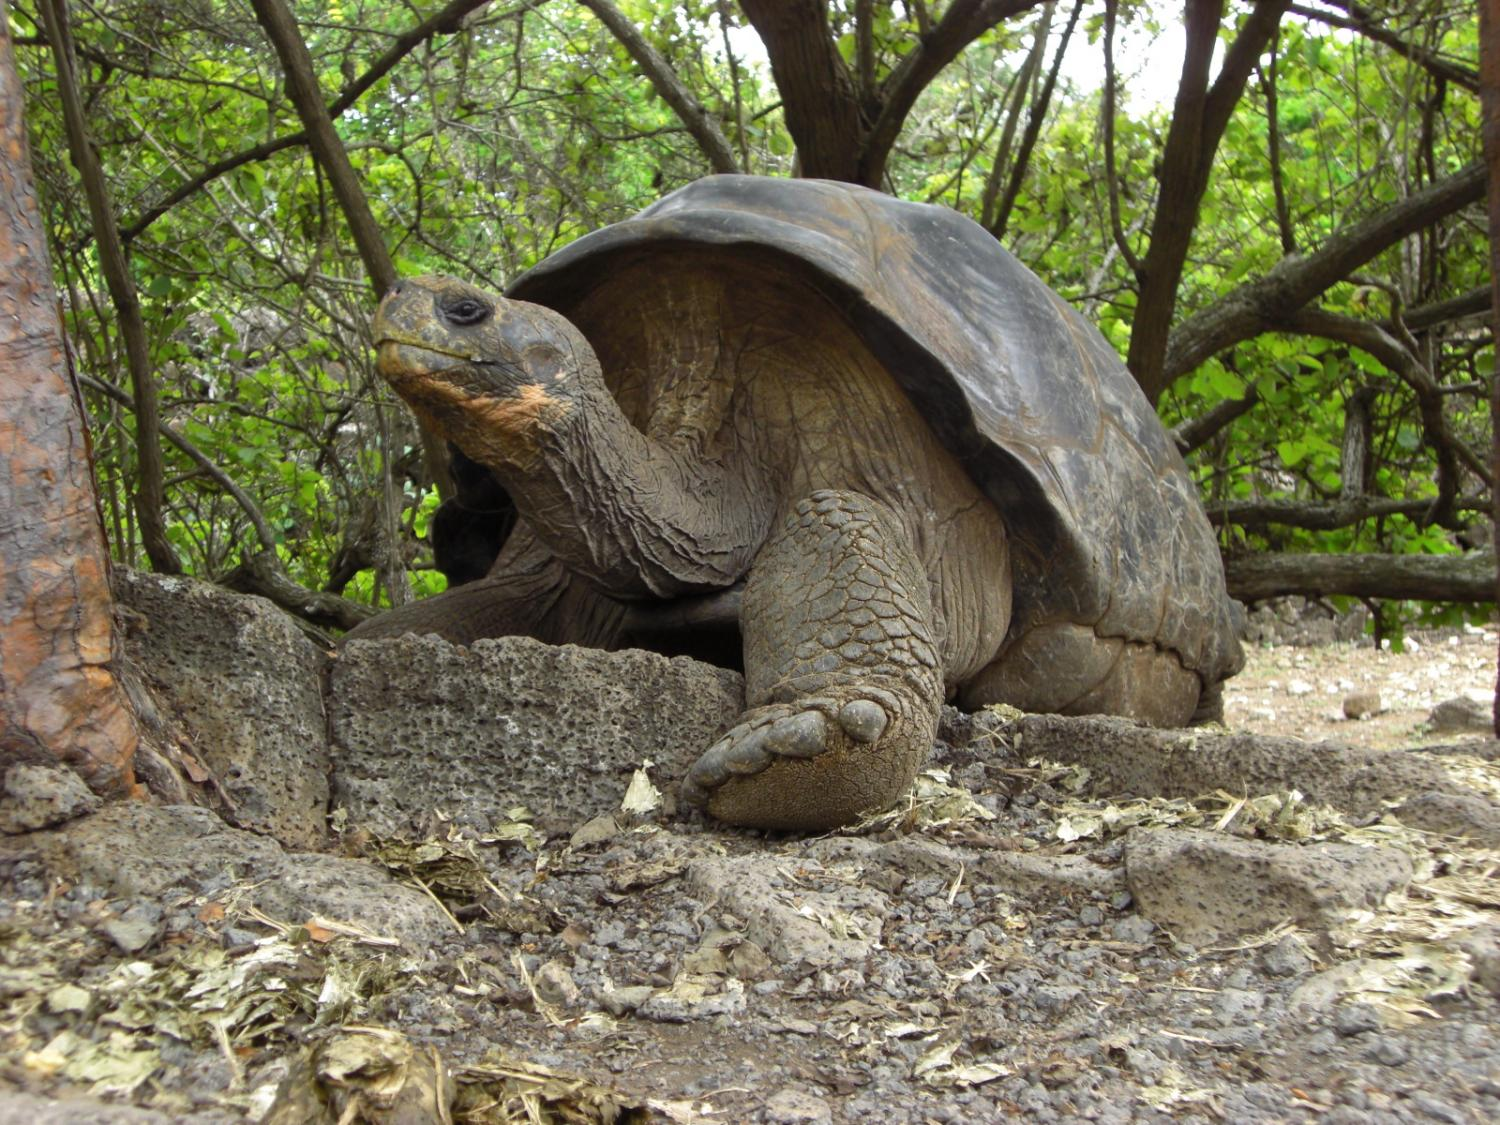 Study Pinpoints When The Galapagos Islands Developed Their